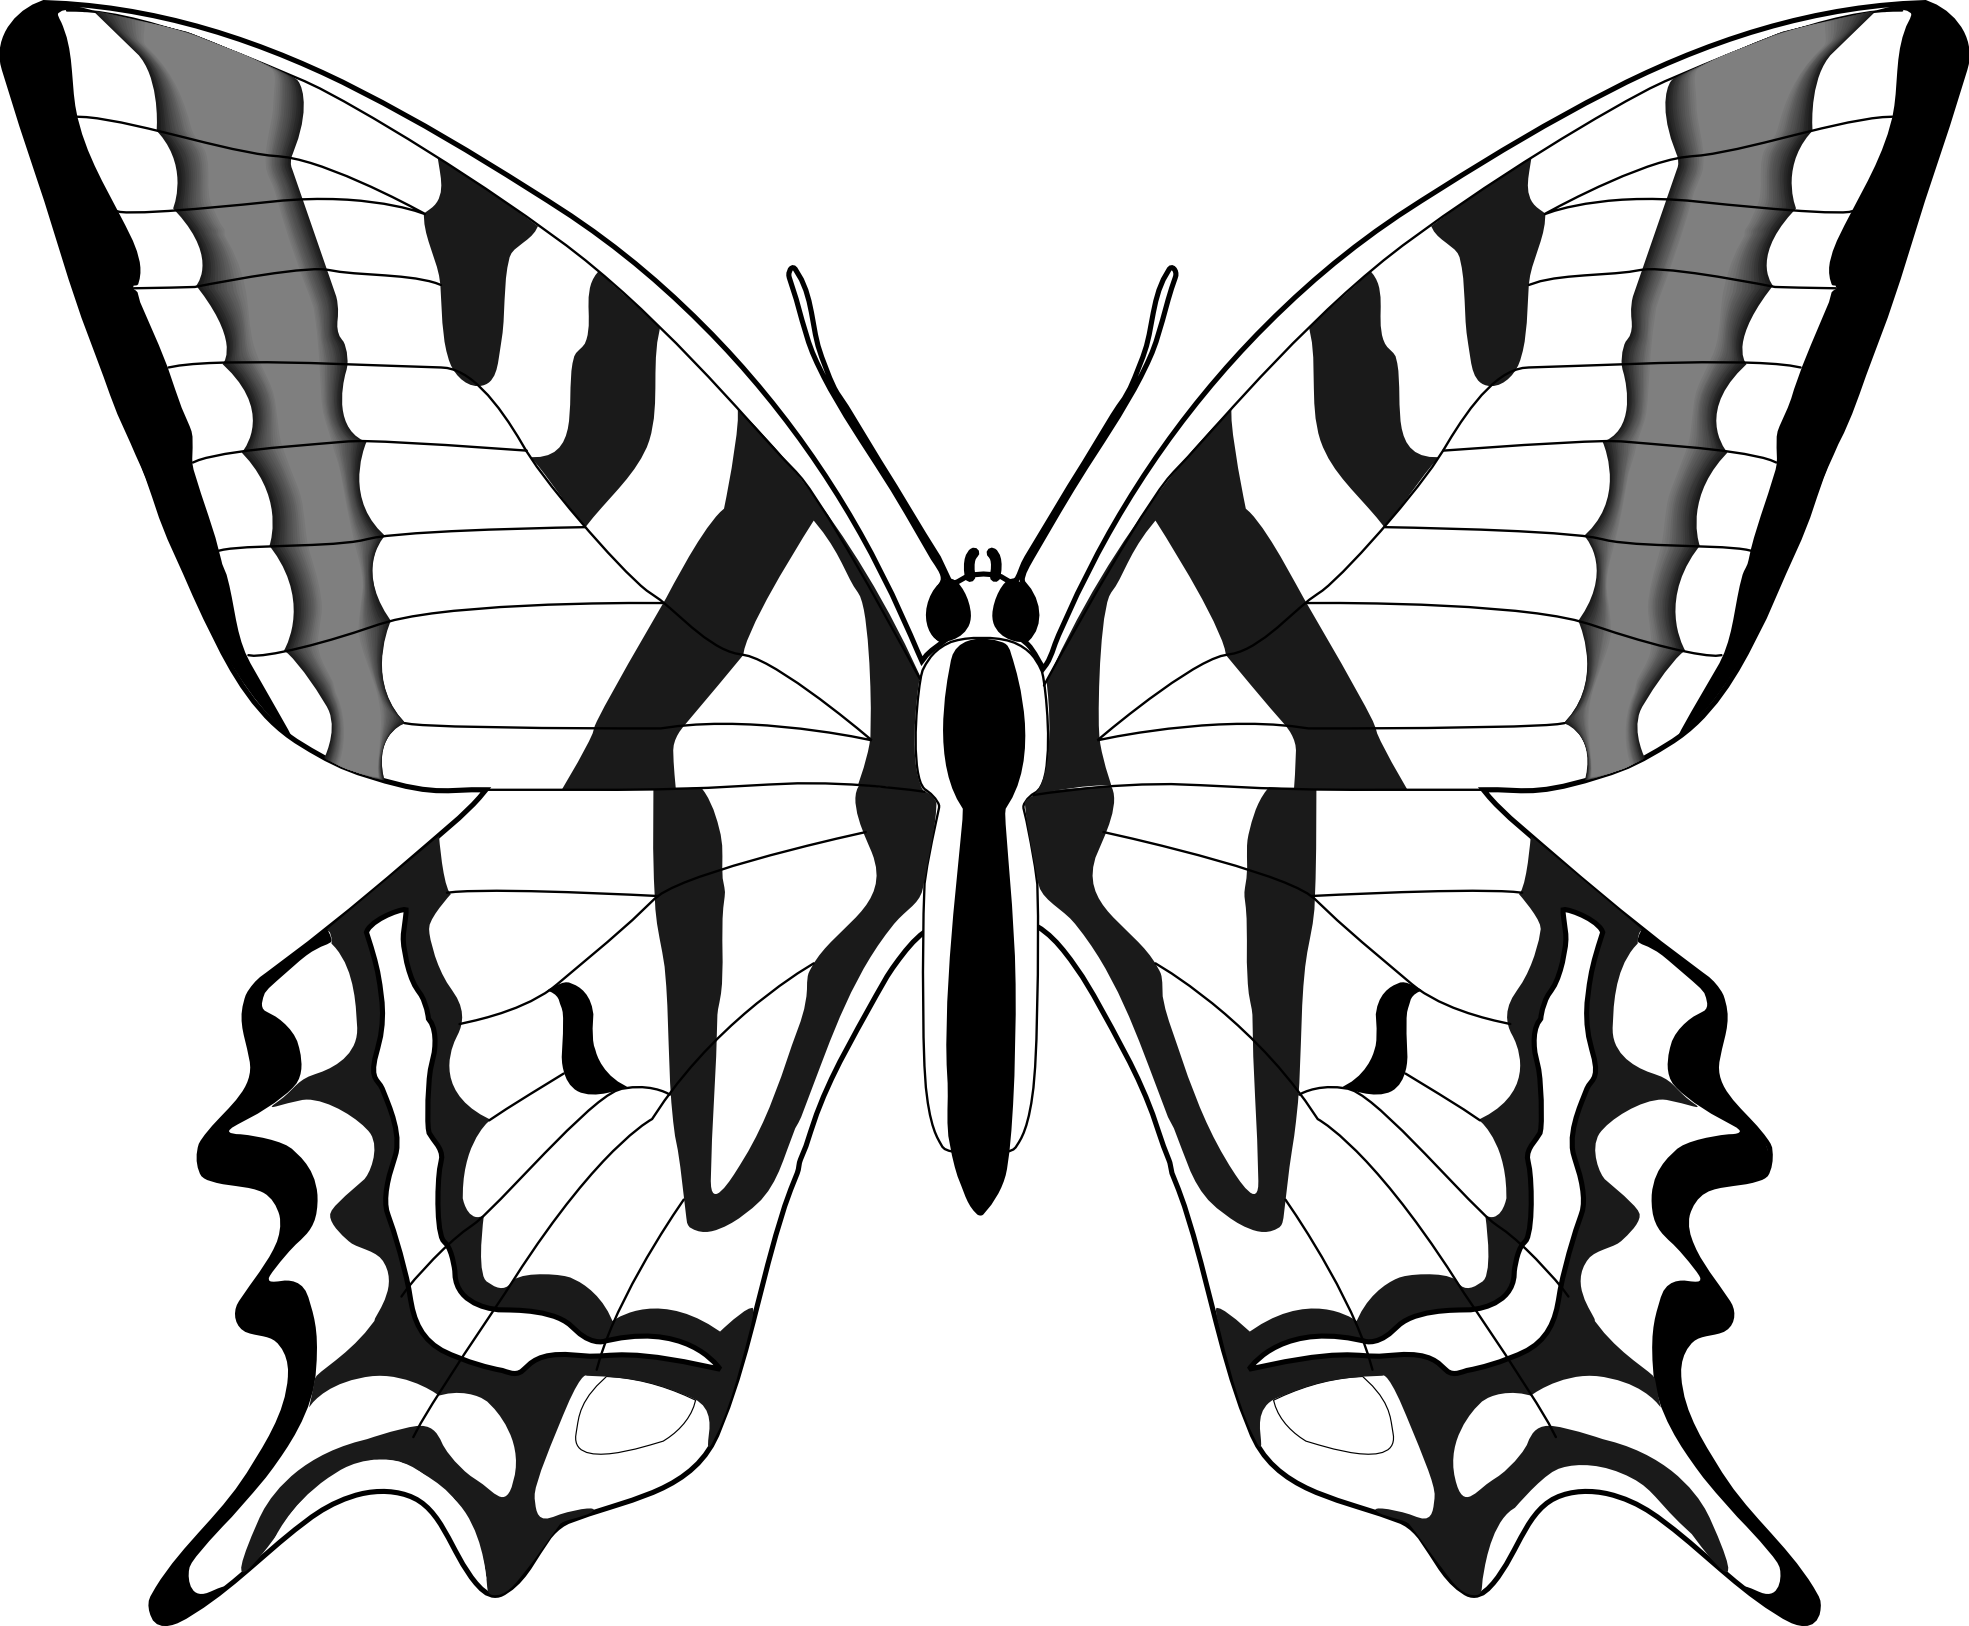 Black and white cross with butterfly clipart clip art royalty free library Simple Black And White Butterfly Clipart #1 | bUtTeRfLiEs ... clip art royalty free library